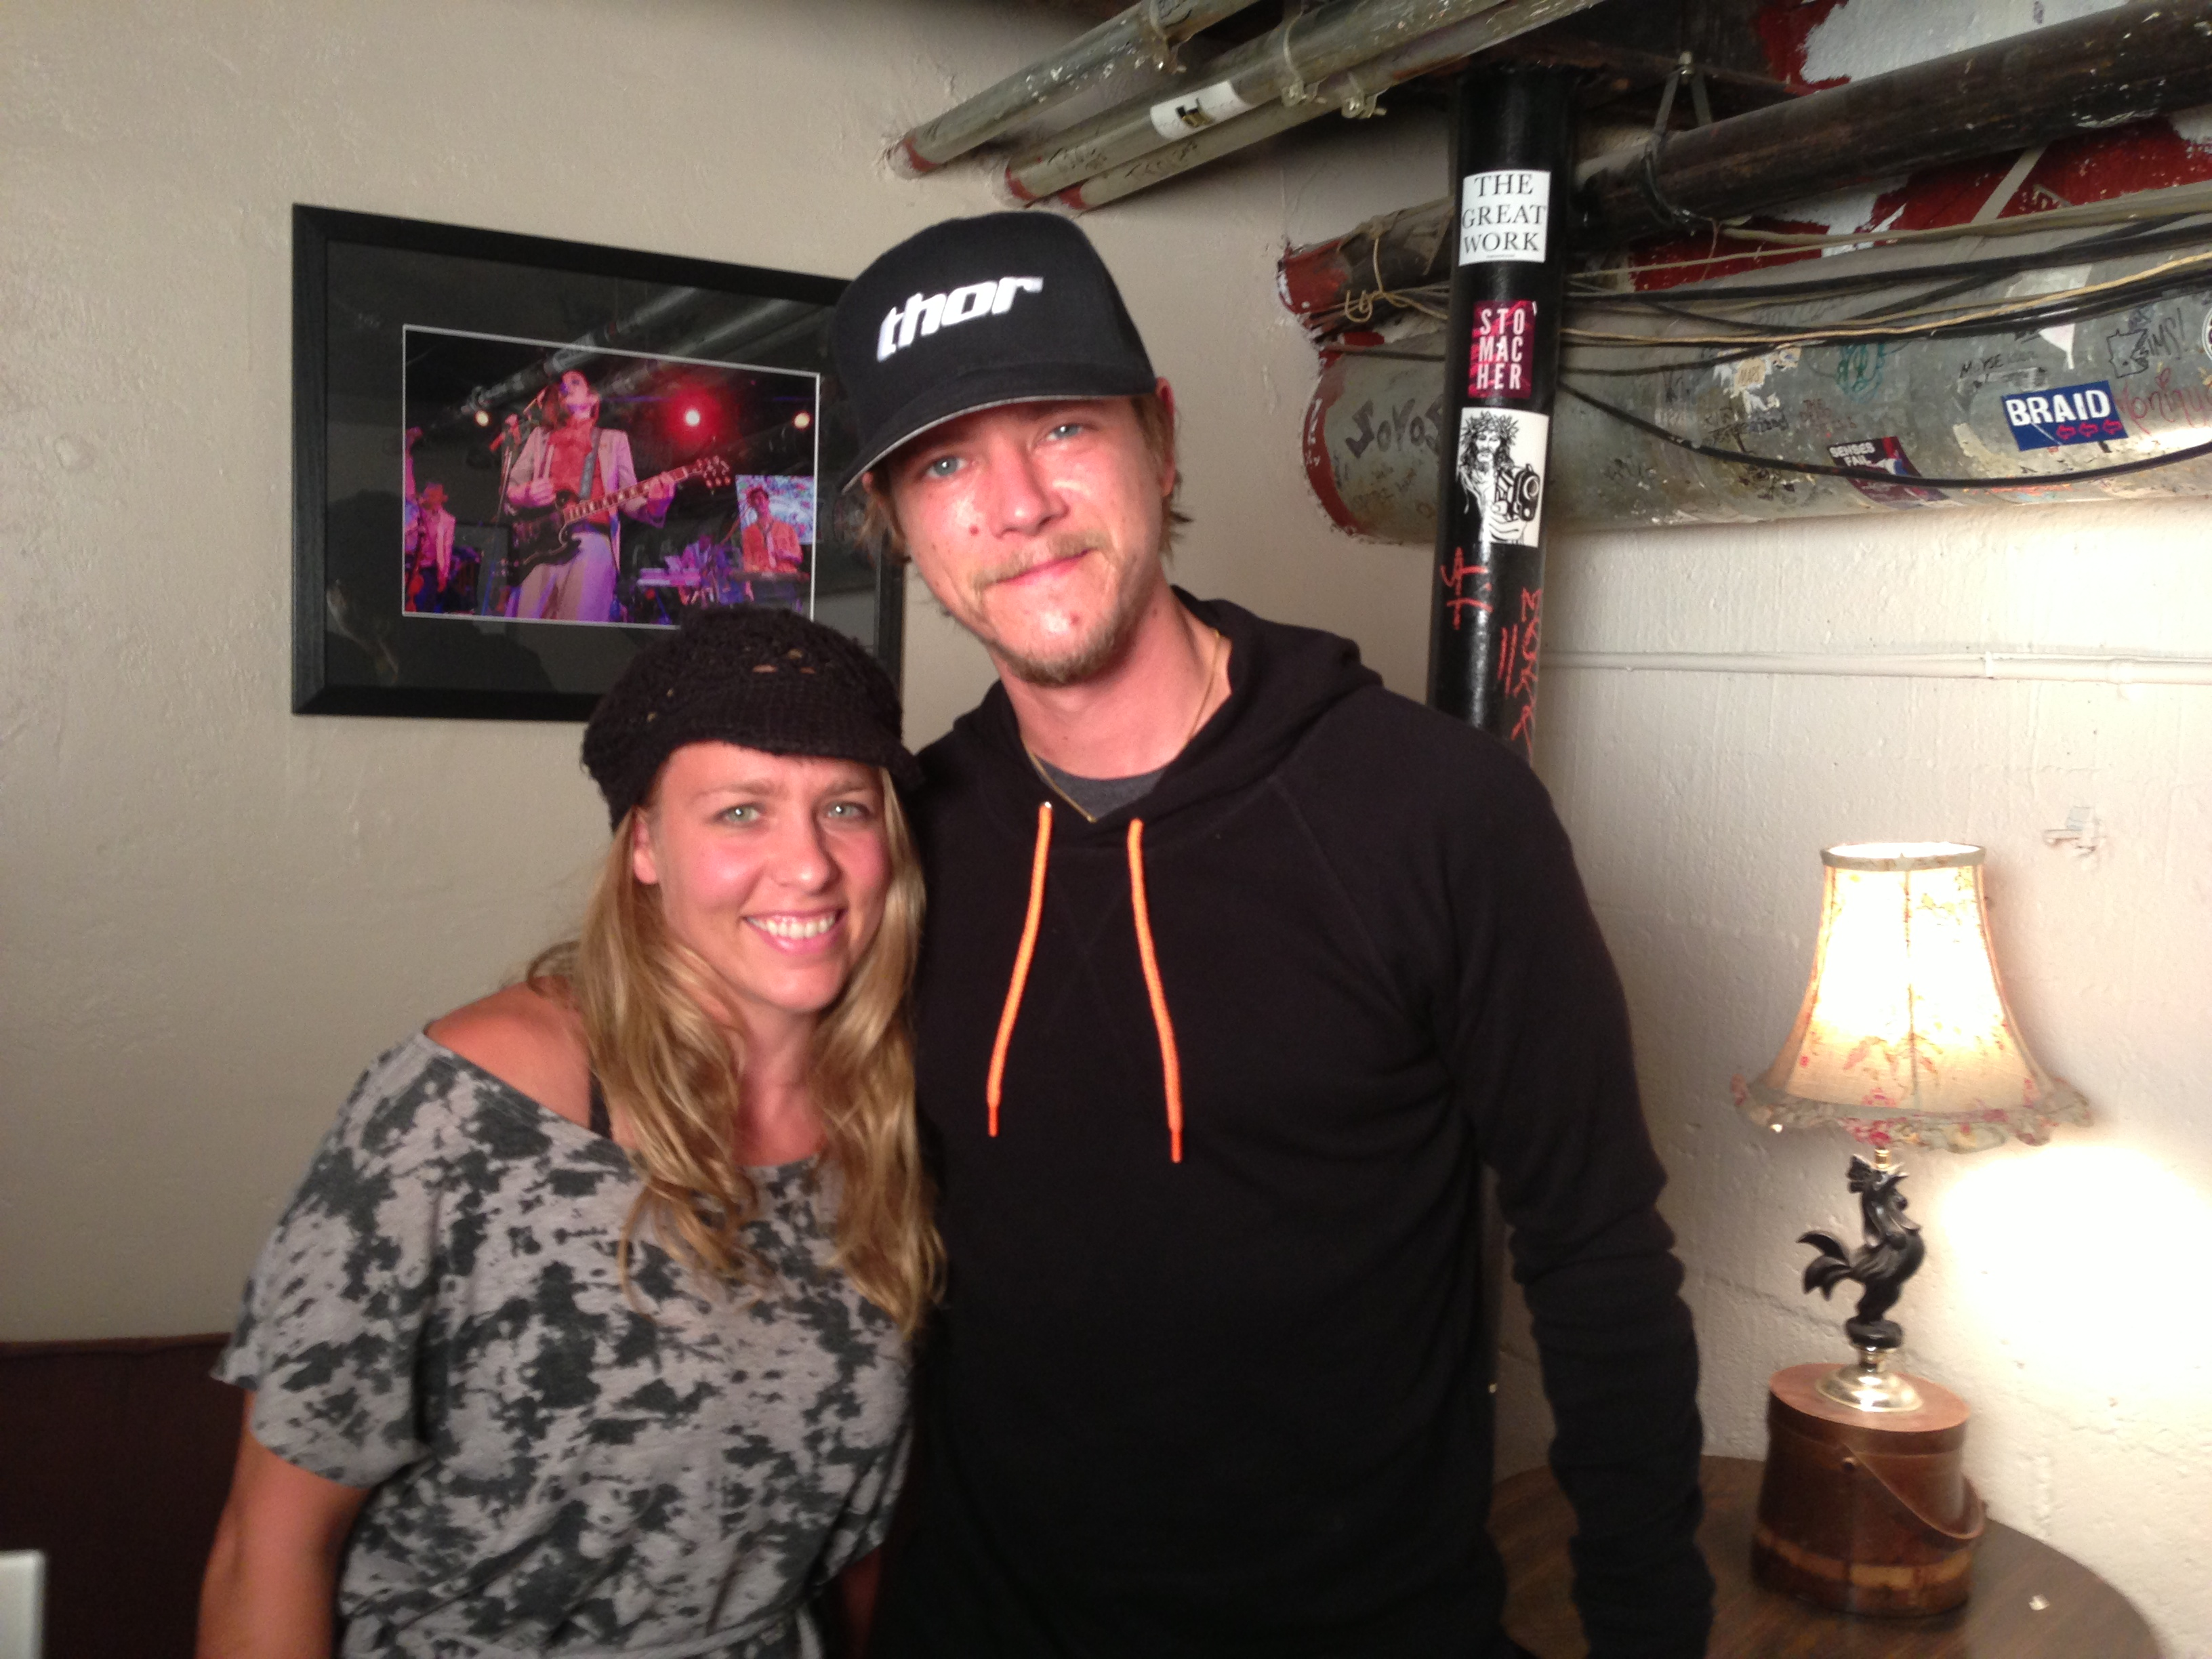 Me with Paul Banks, Backstage at Slim's